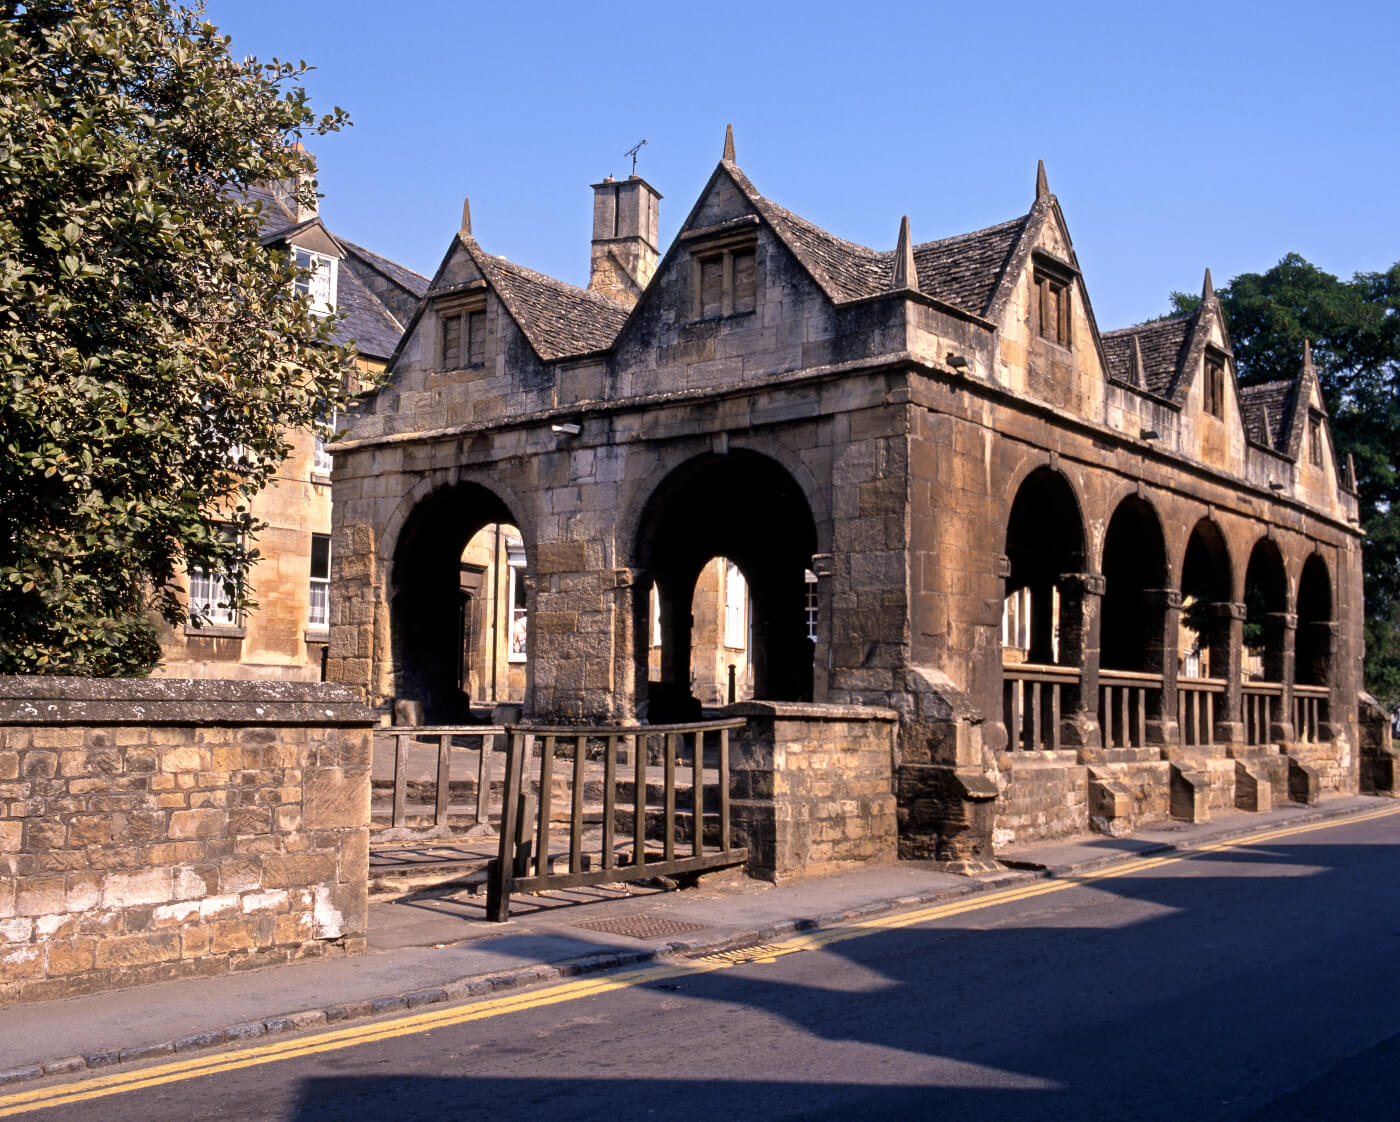 An image of the exterior of Chipping Campden Market Hall